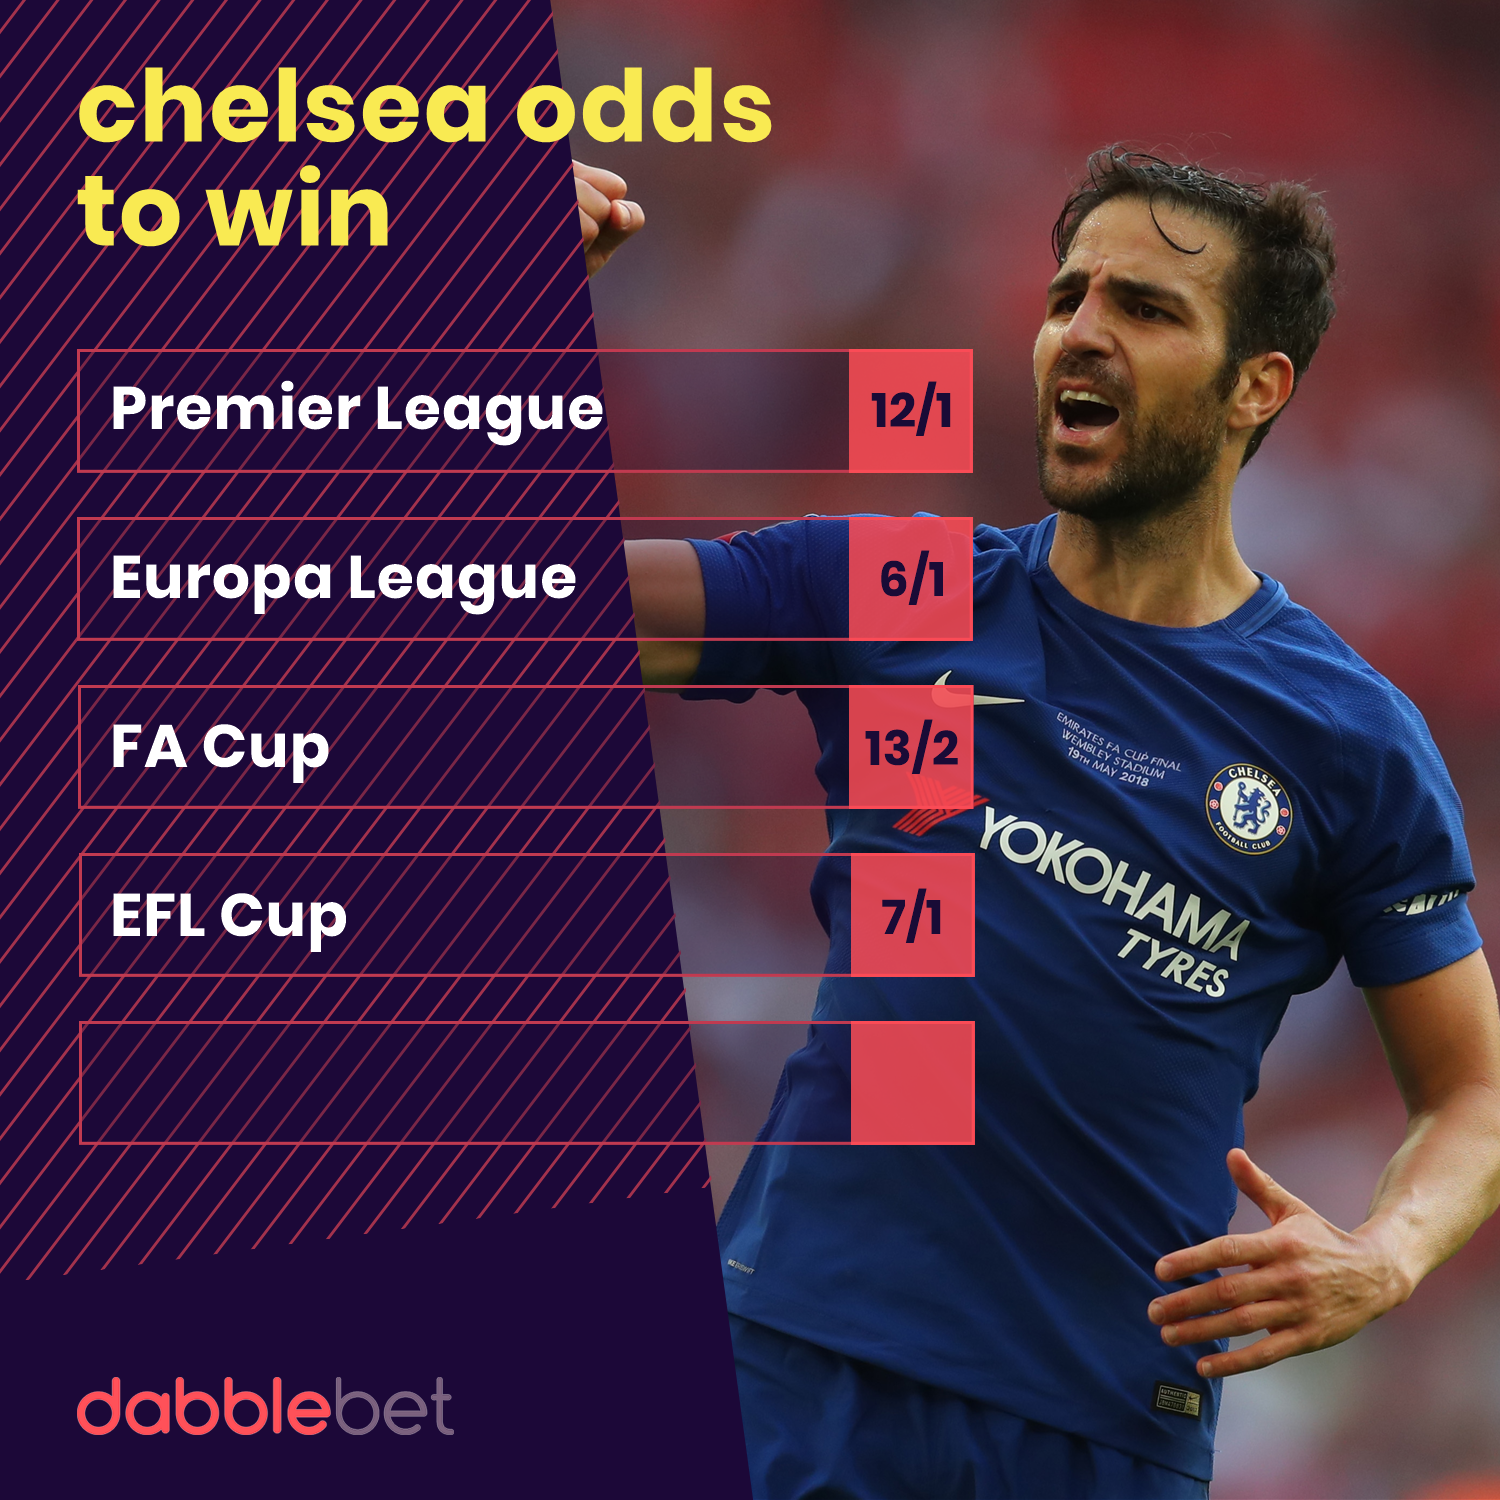 Chelsea odds 1407 graphic